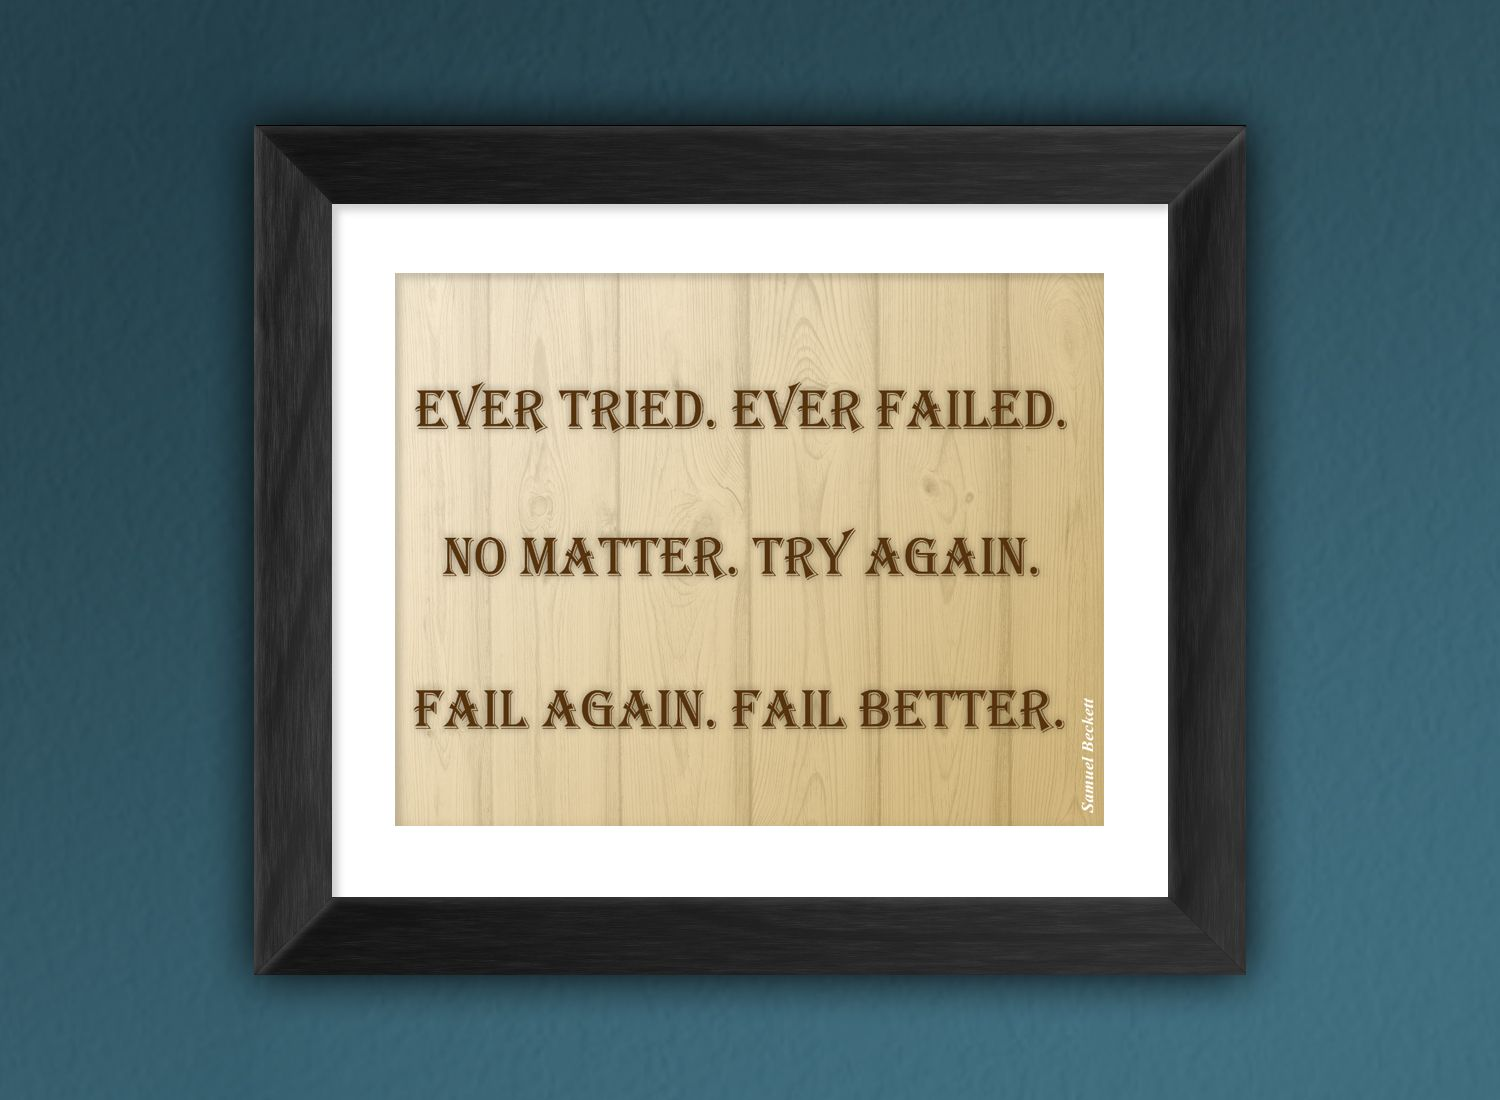 Framed Inspirational Quote Motto Contact for